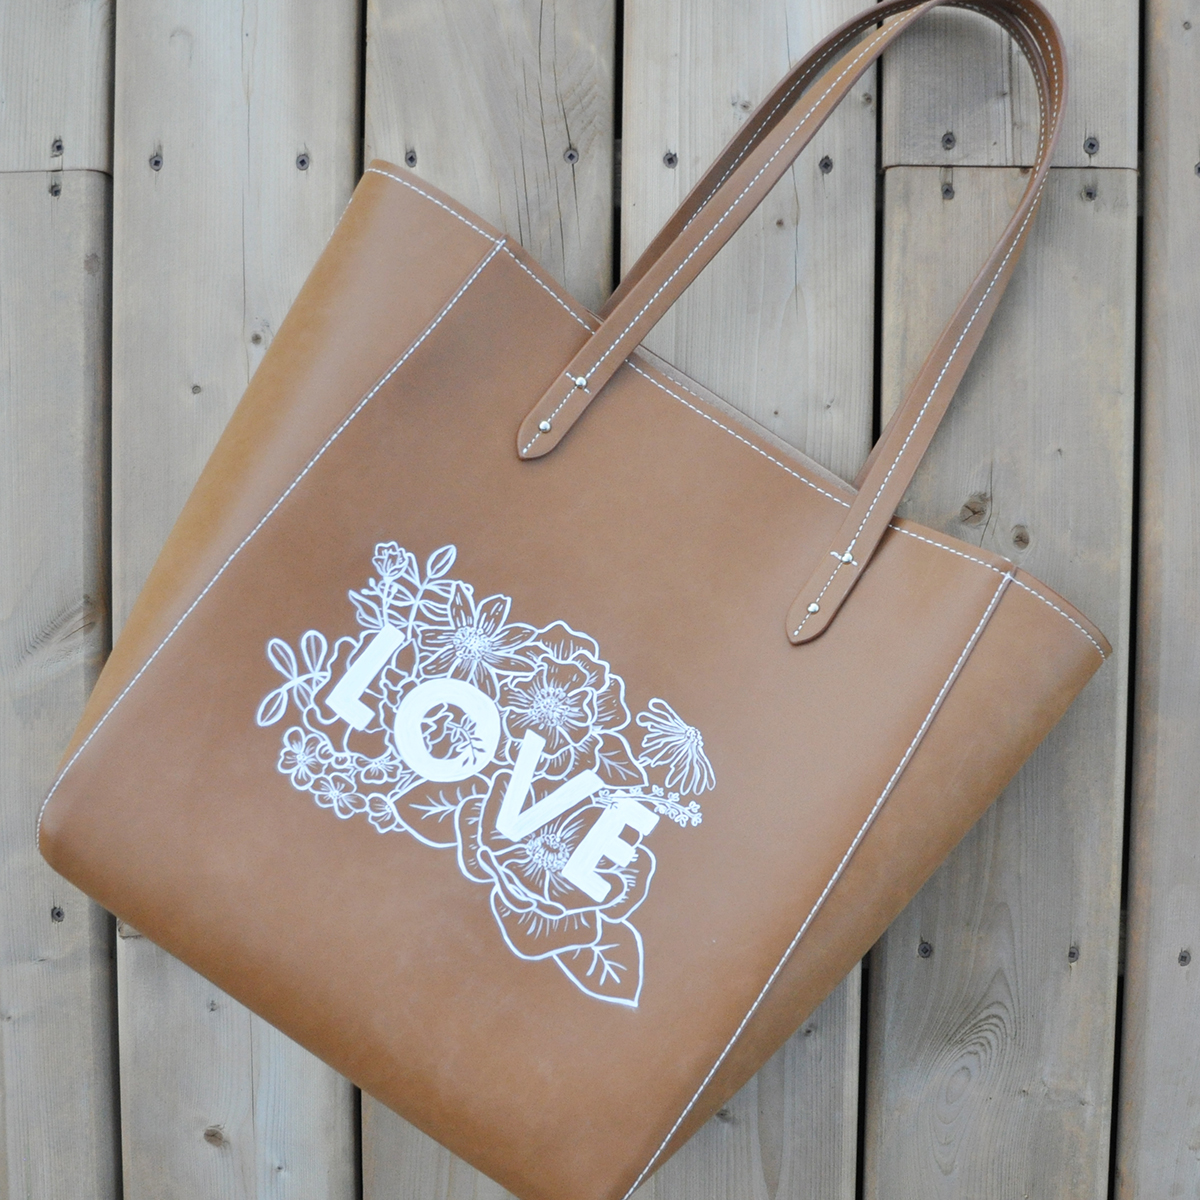 Hand Painted Faux Leather Handbag